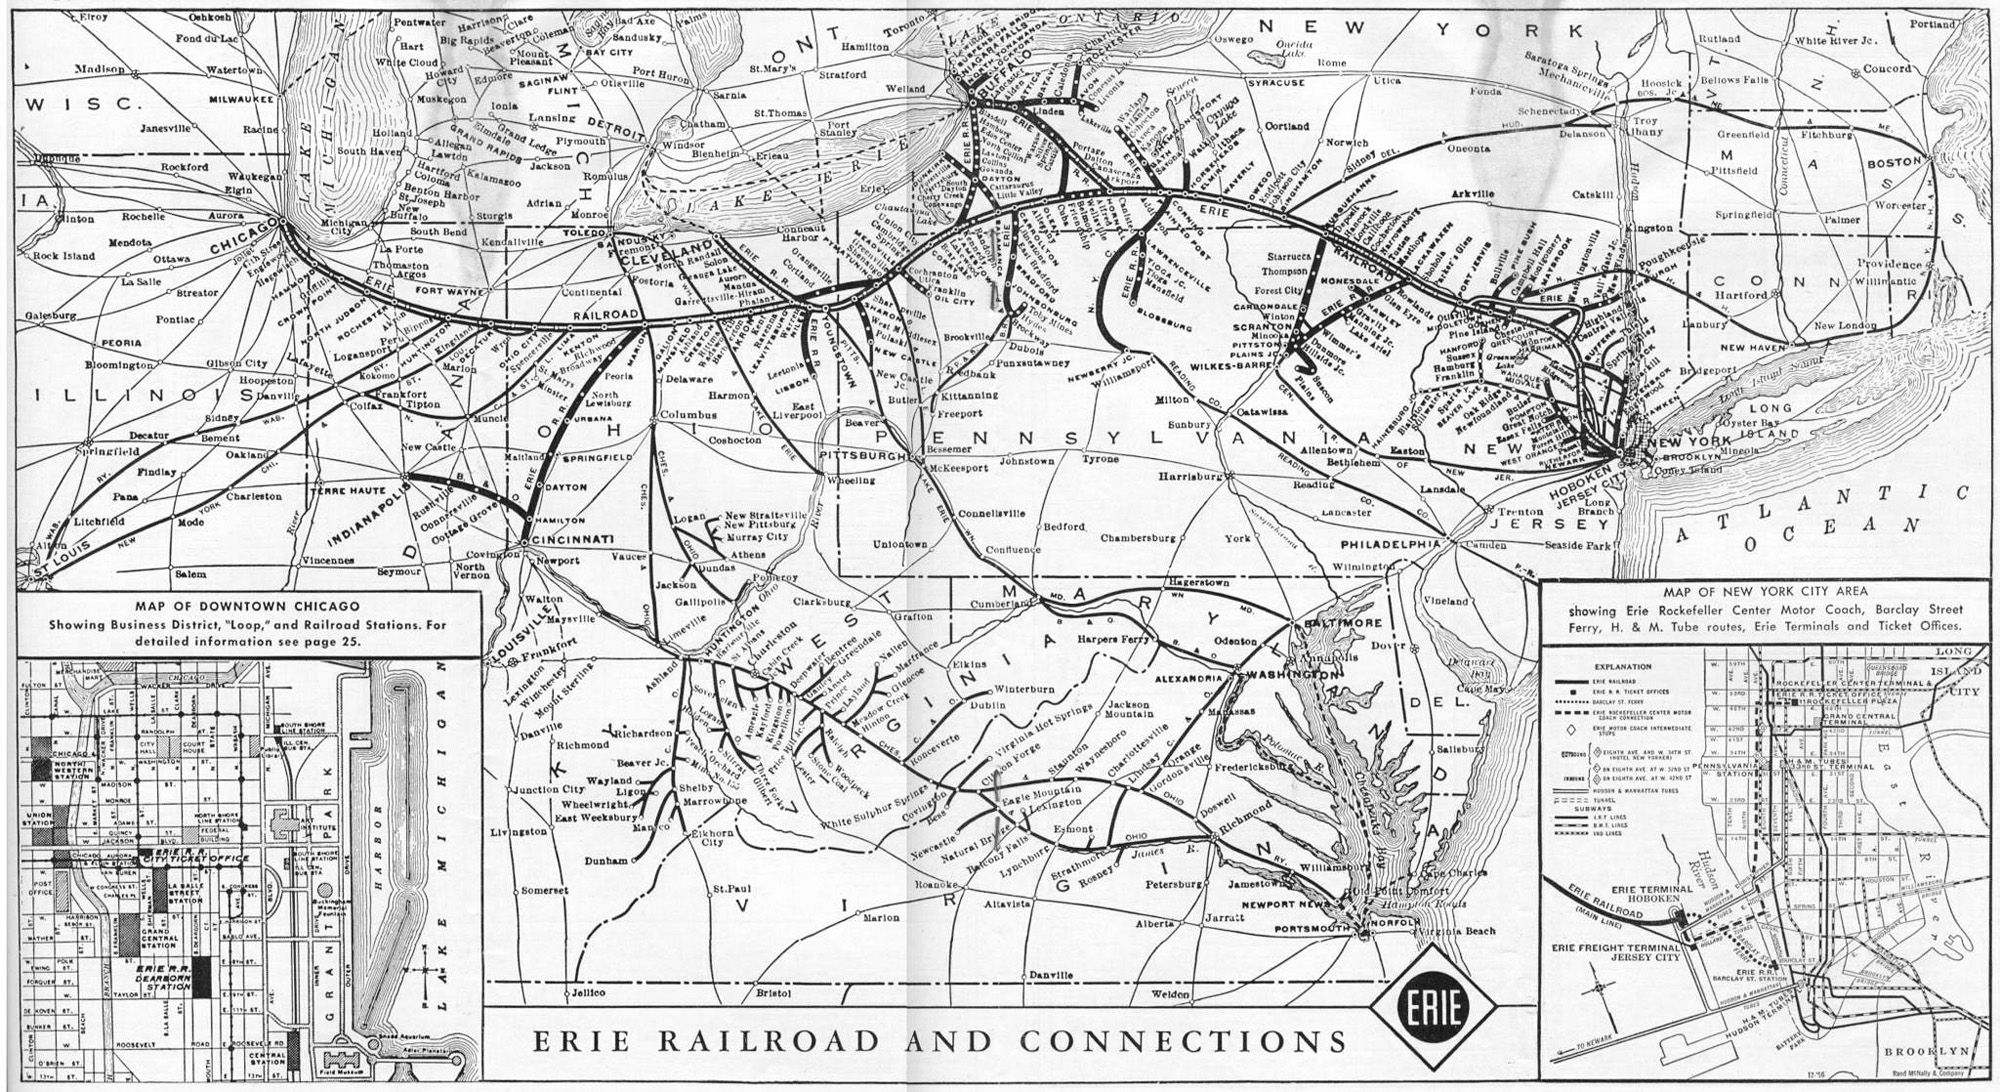 The Erie Railroads earliest history dates back to the 1830s and